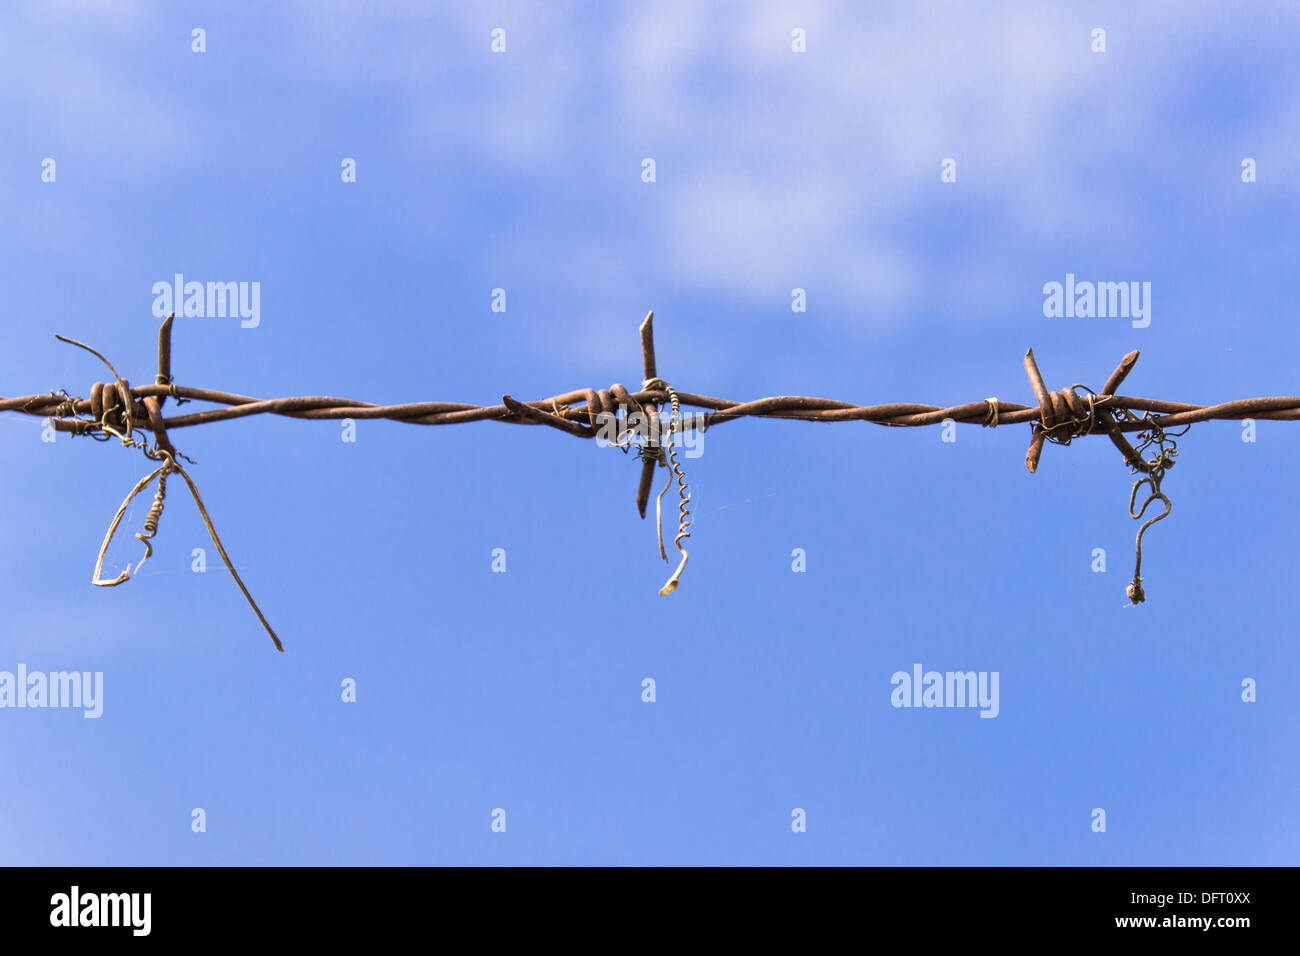 Barbed wire and blue sky - Stock Image